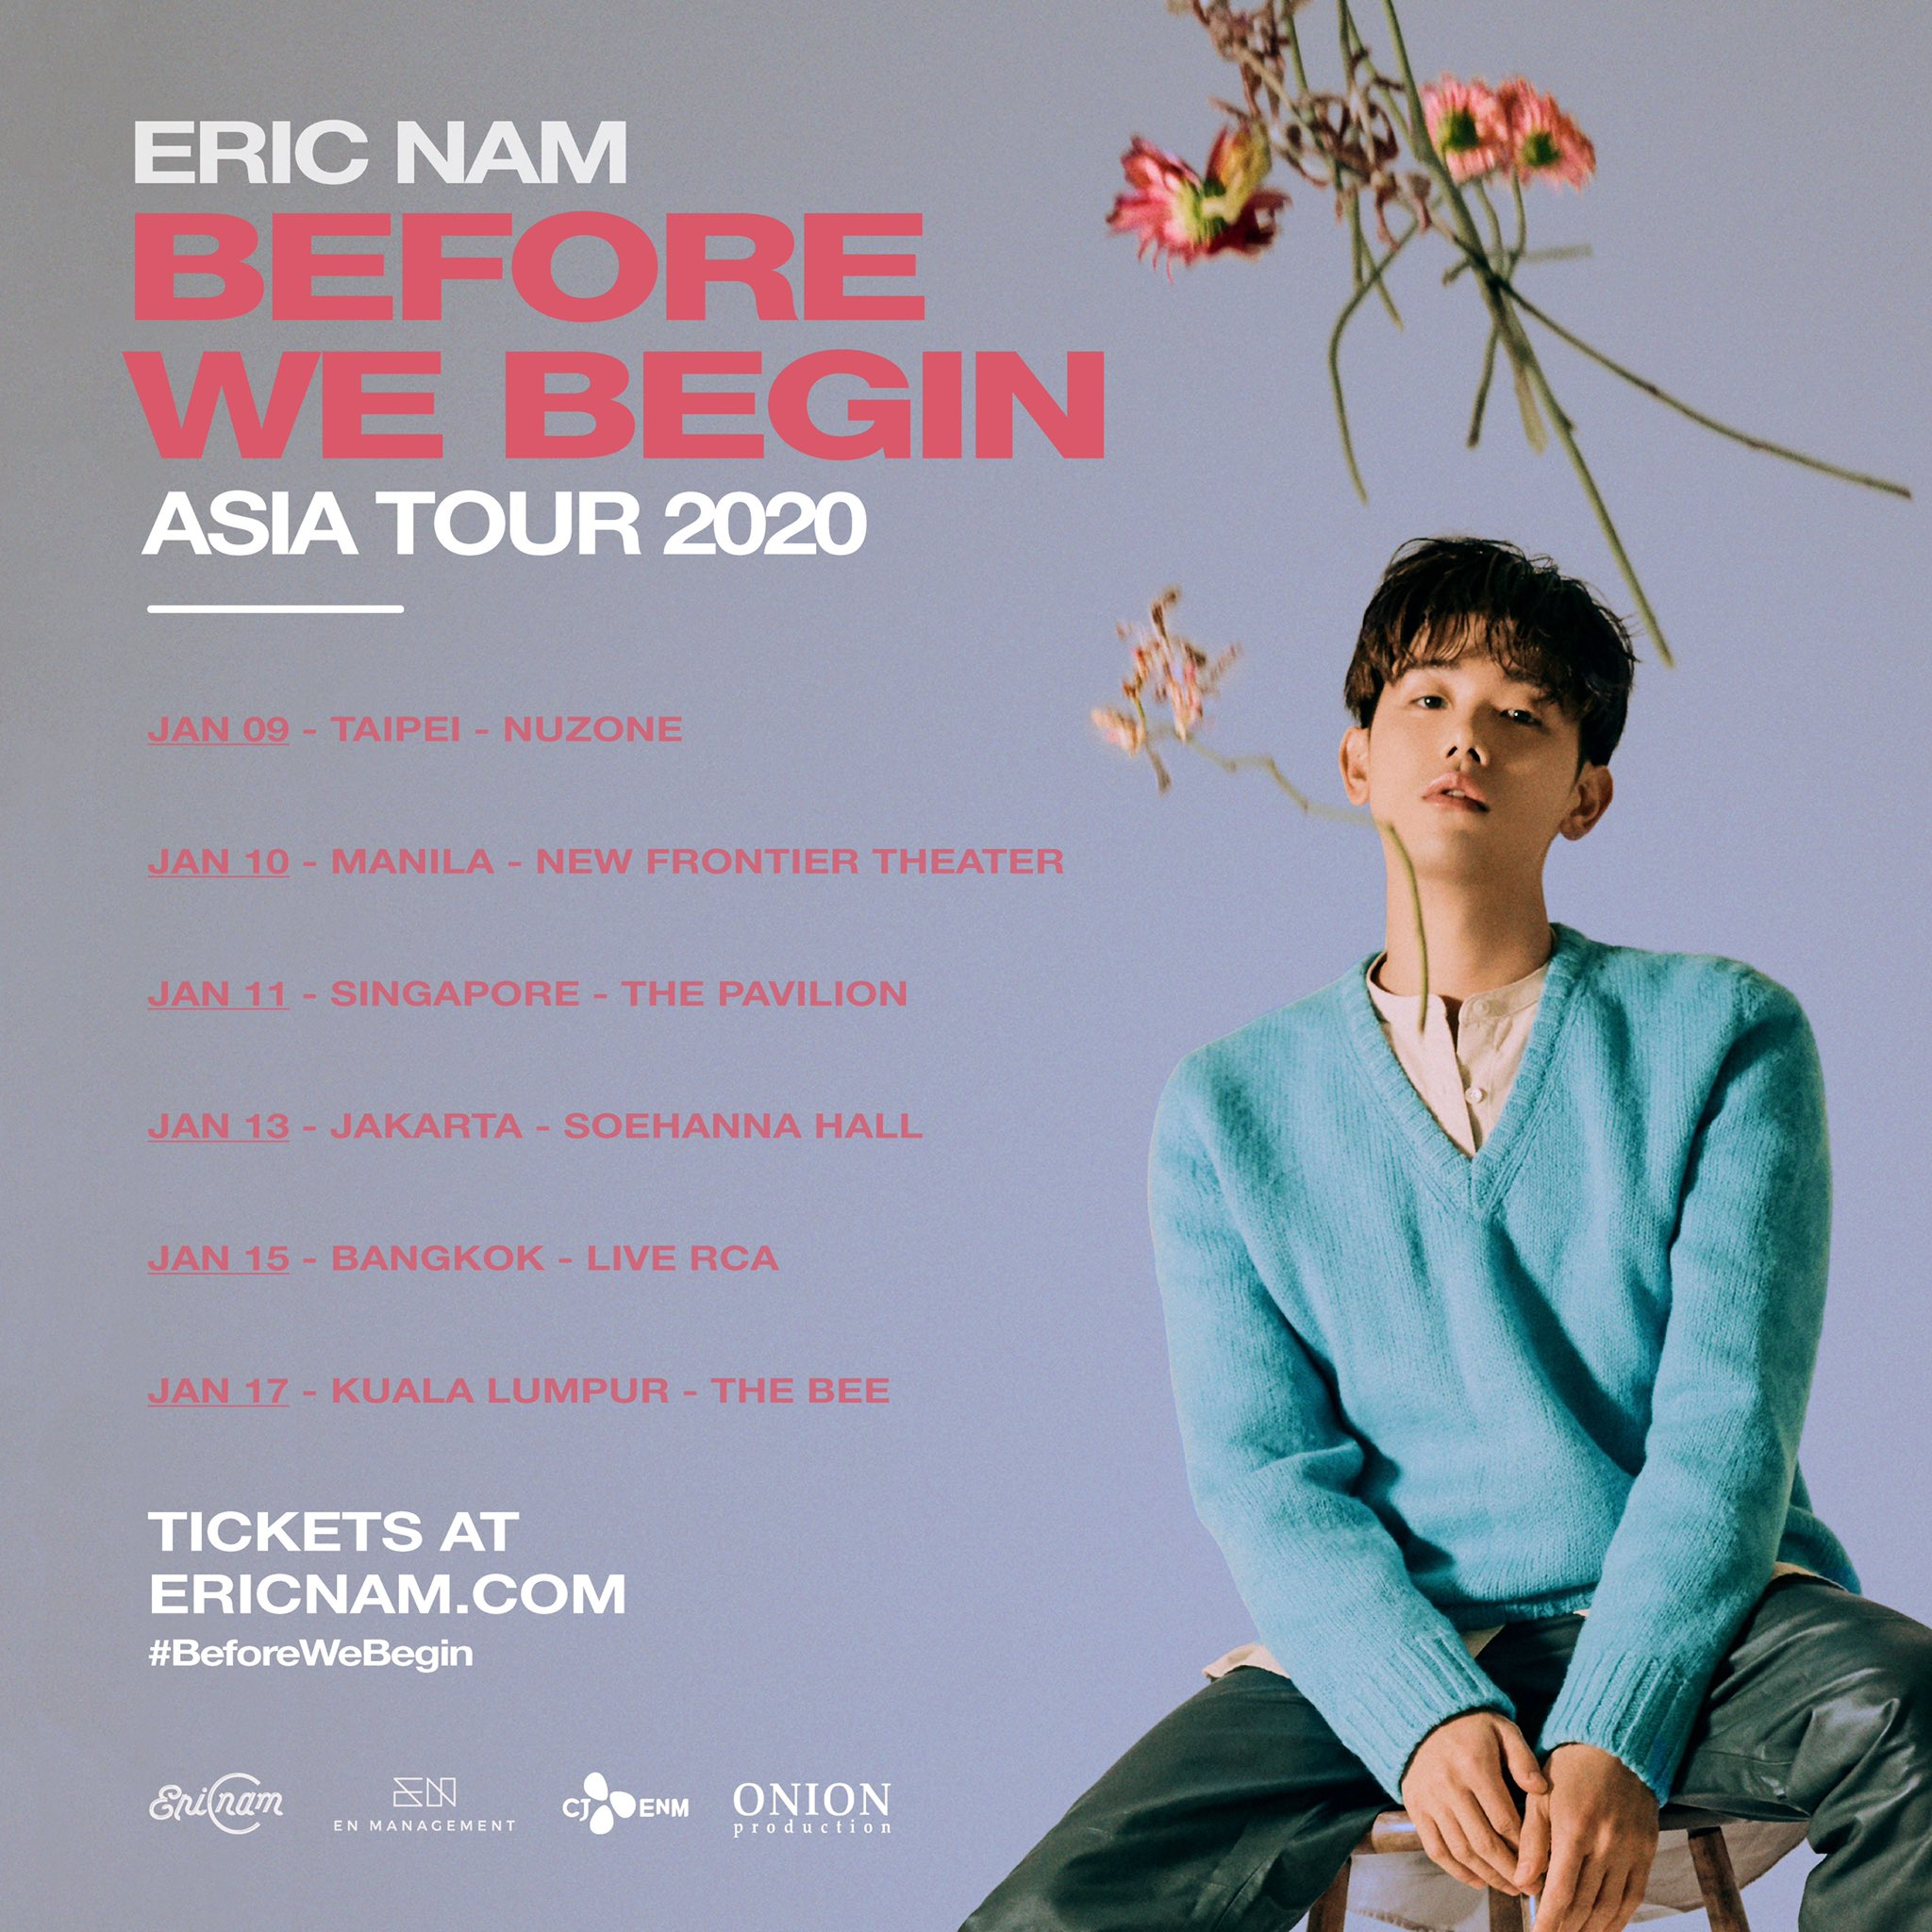 """Eric Nam """"Before We Begin"""" Asia Tour 2020: Cities And Ticket Details"""